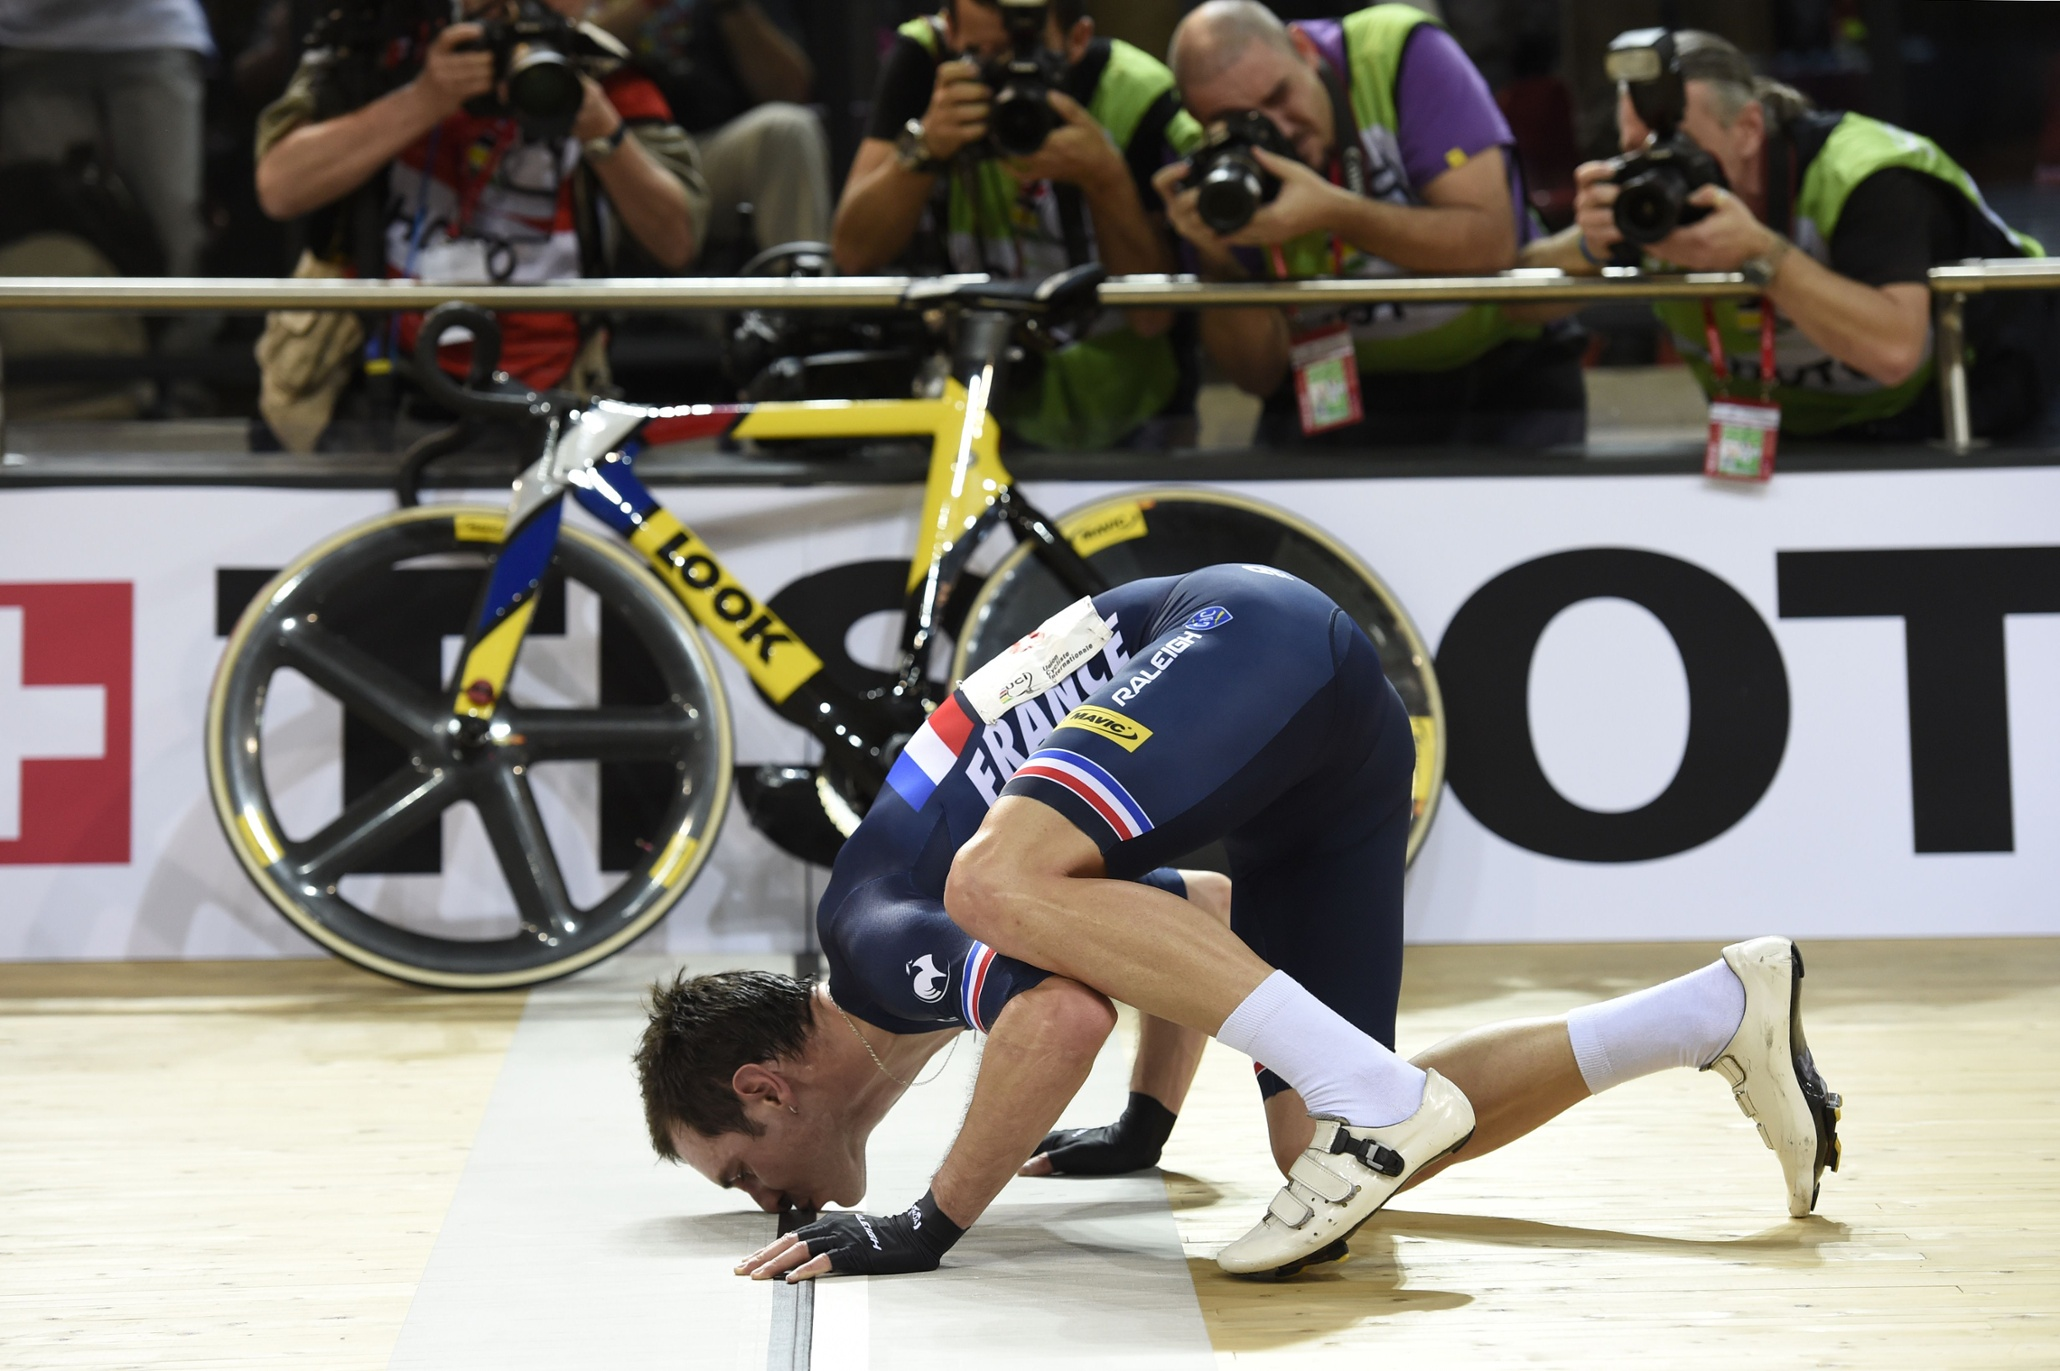 Track Cycling World Championships 2015